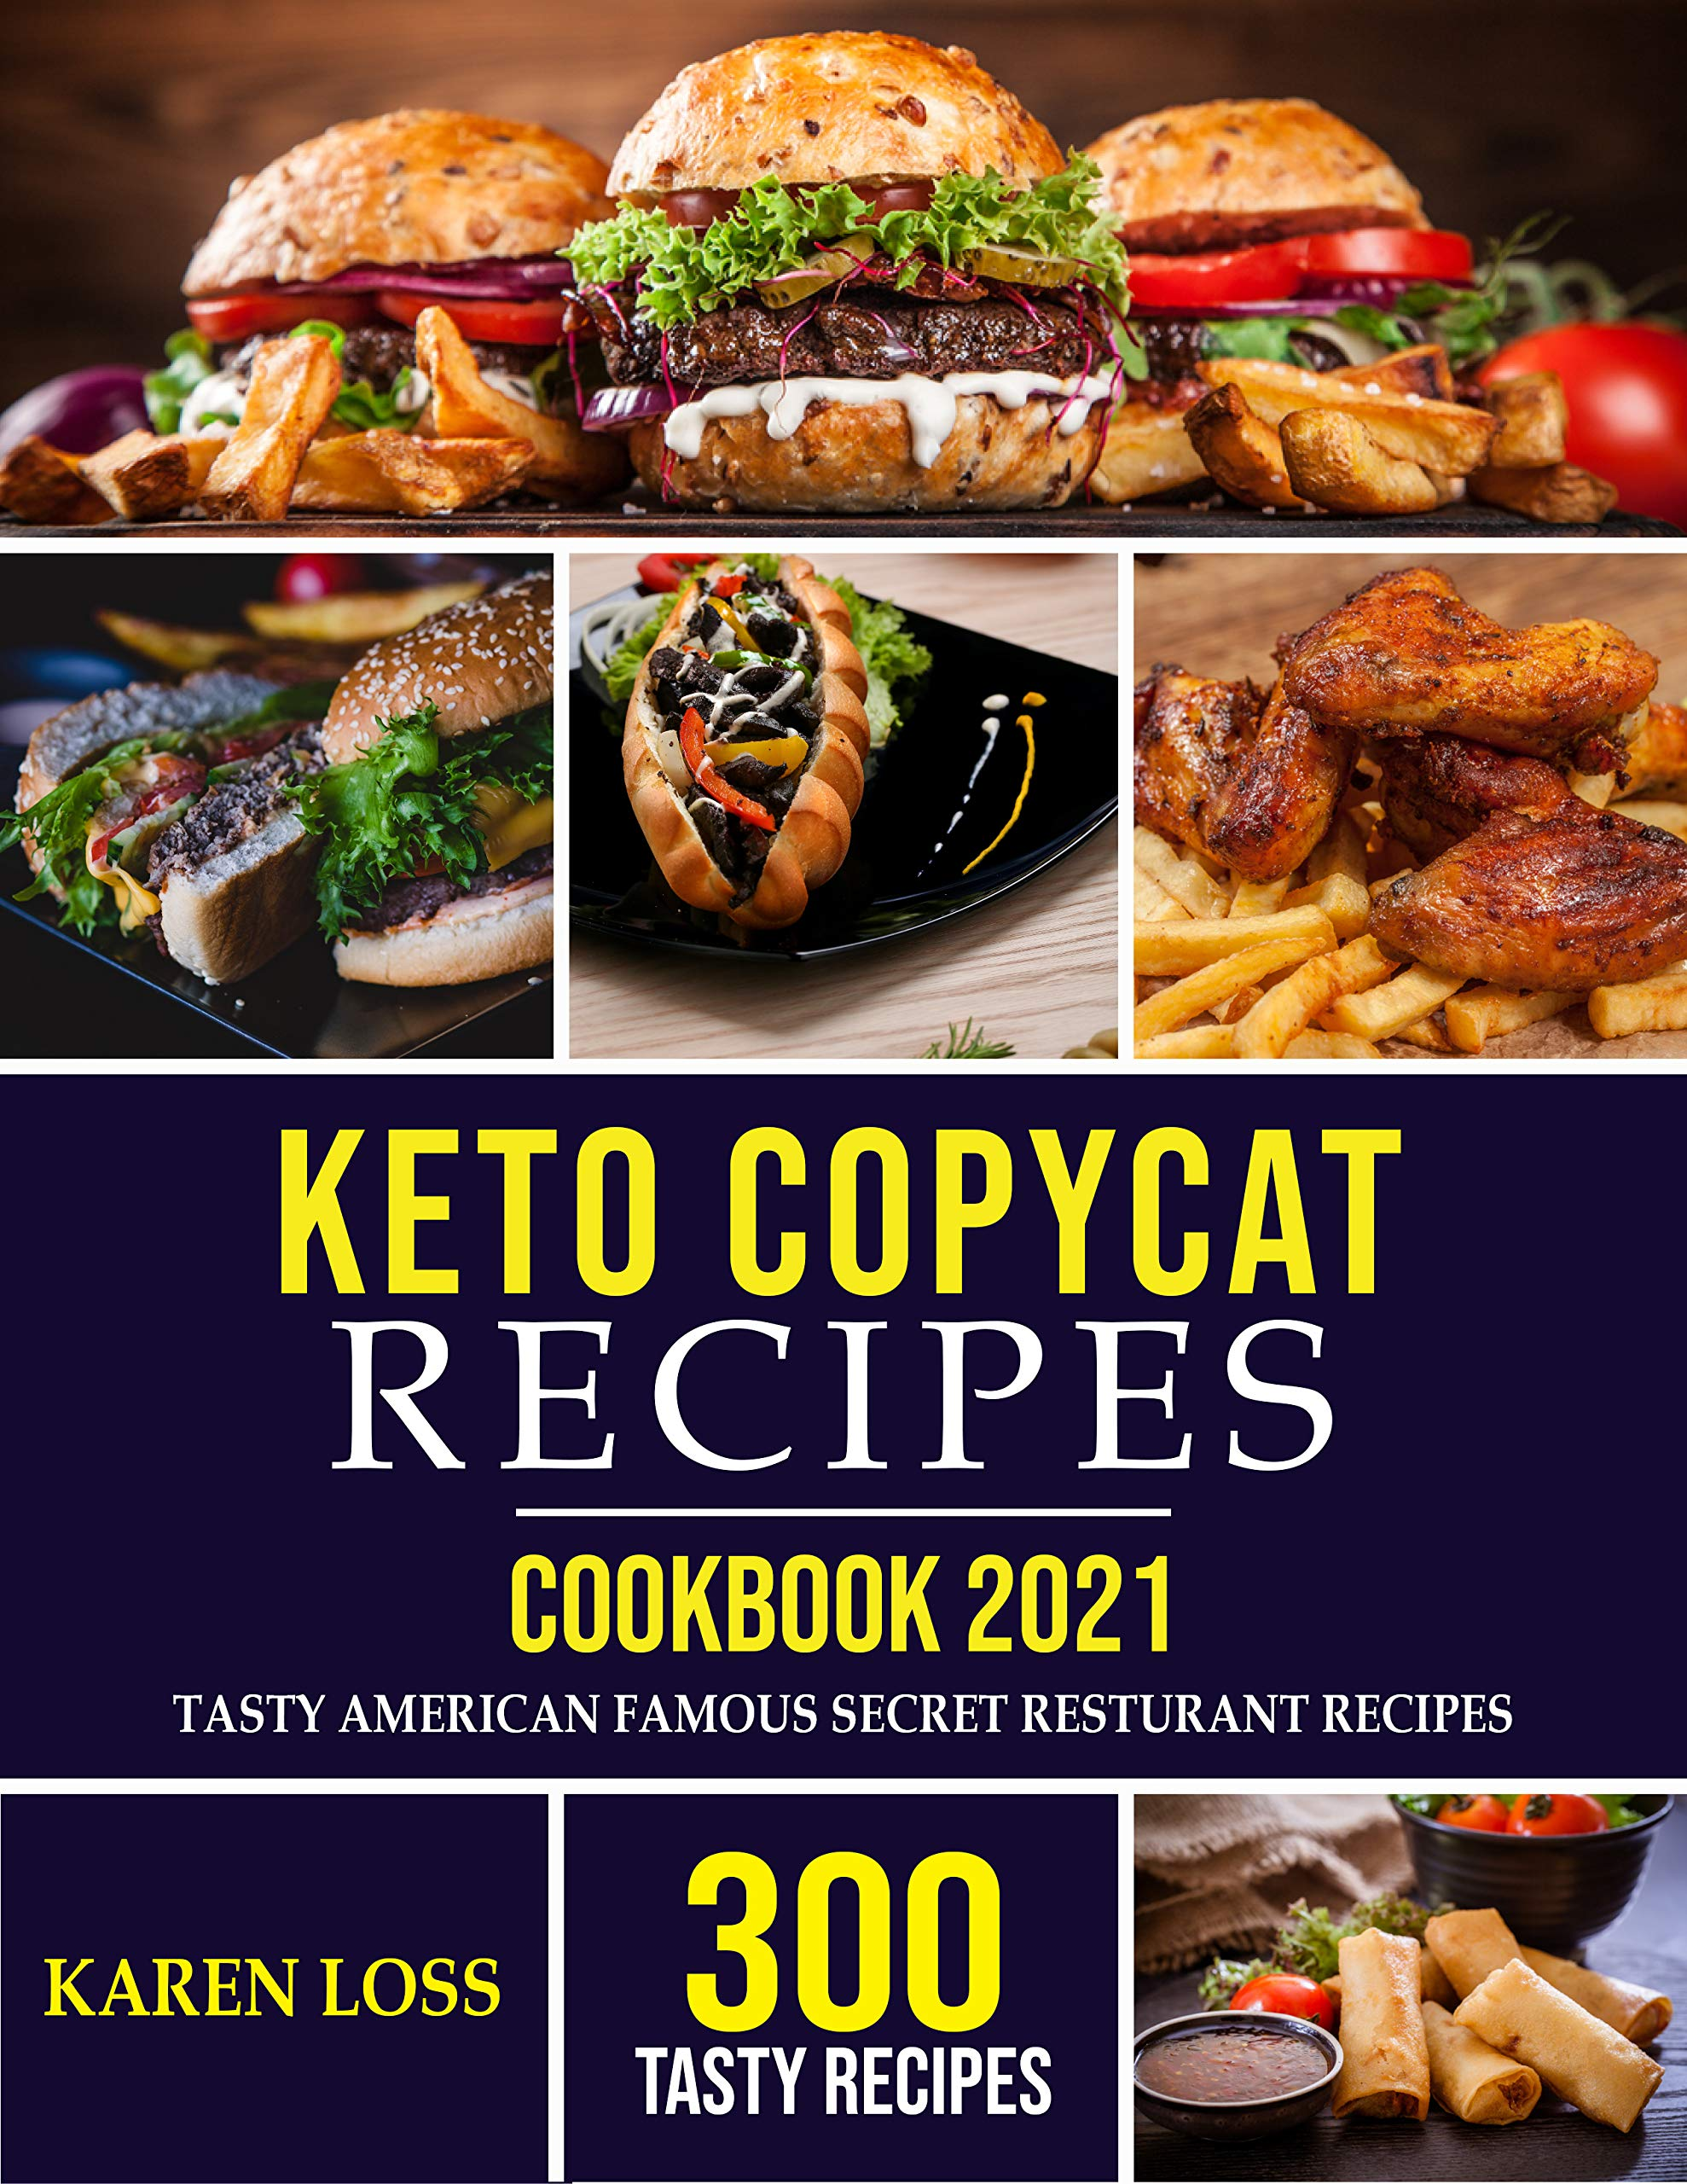 KETO COPYCAT RECIPES-Cookbook 2021: 300 Tasty American Famous Secret Restaurant Recipes Adapted into the Most Wanted Ketogenic Diet Way-Making Your Favorite Restaurant Dishes at Home-7 Days Meal Plan